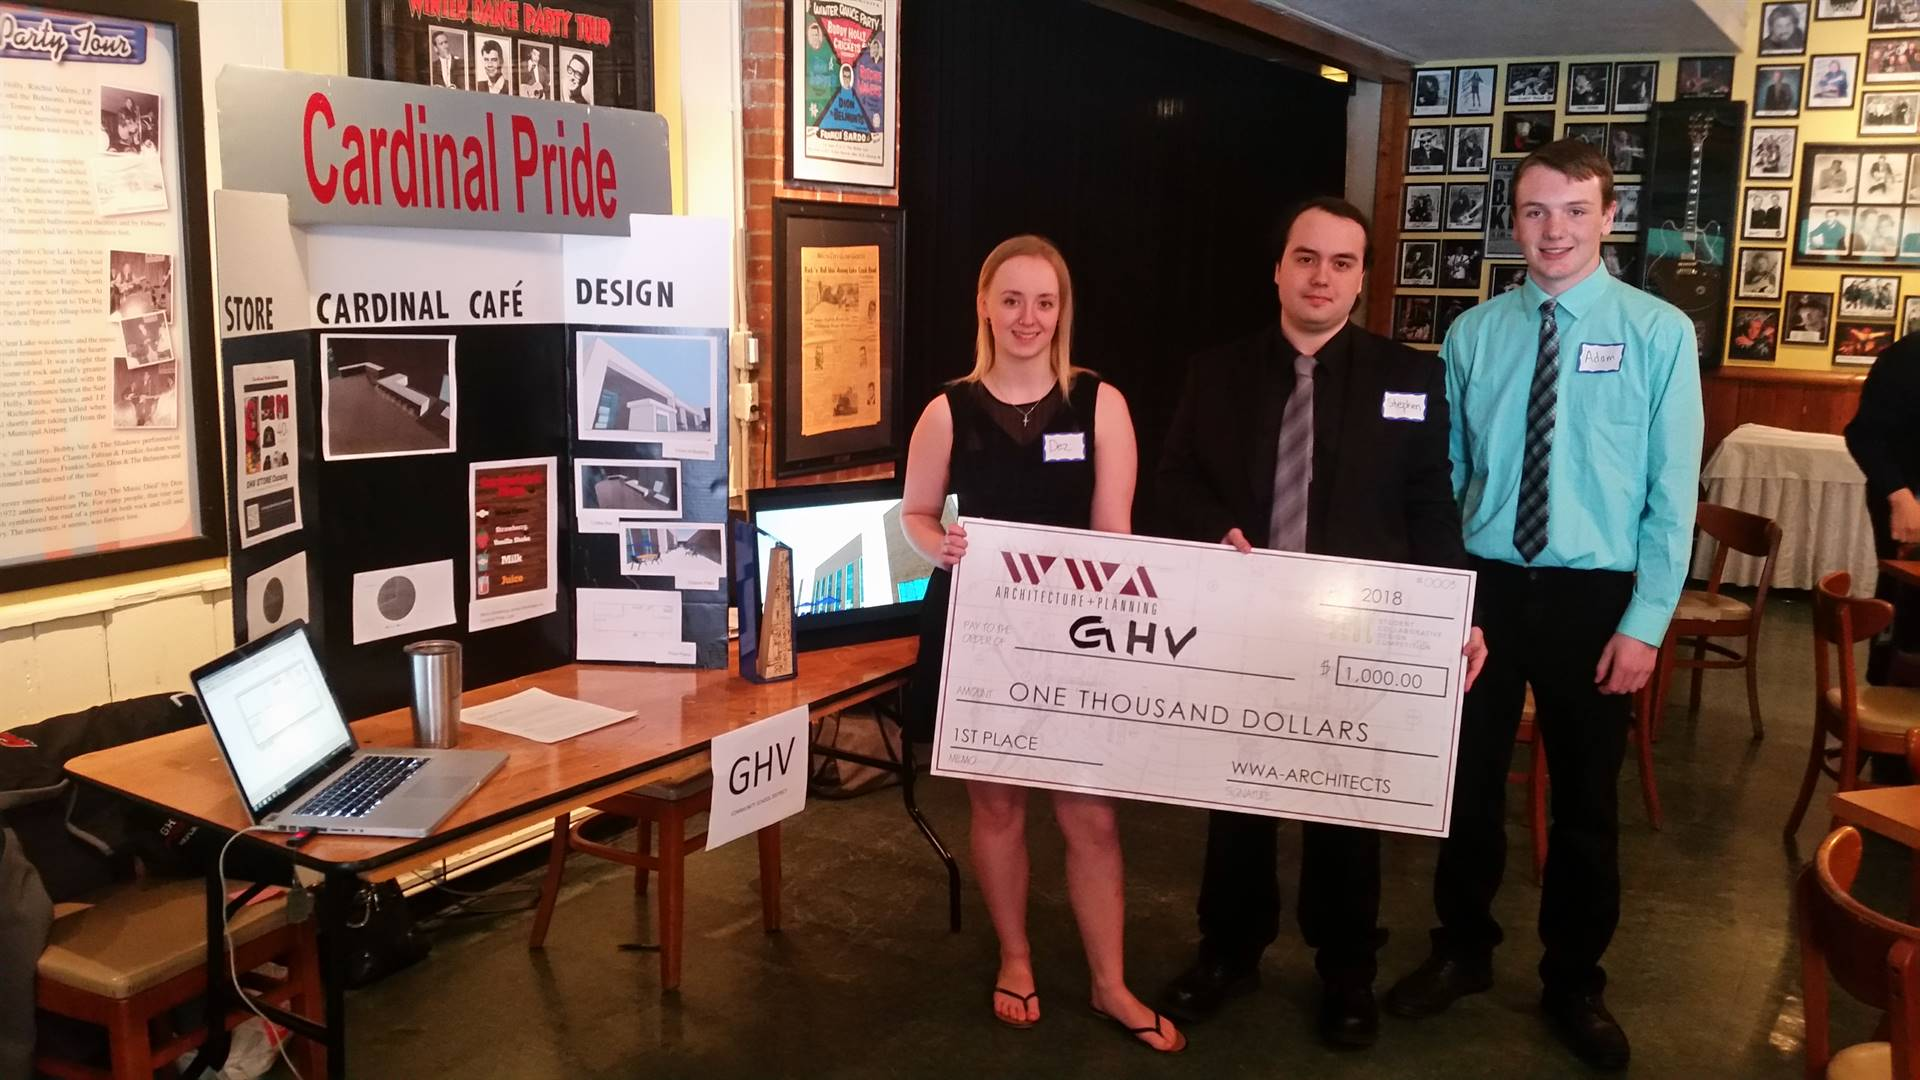 Three high school students holding a large $1000 check for 1st place in CAD competition